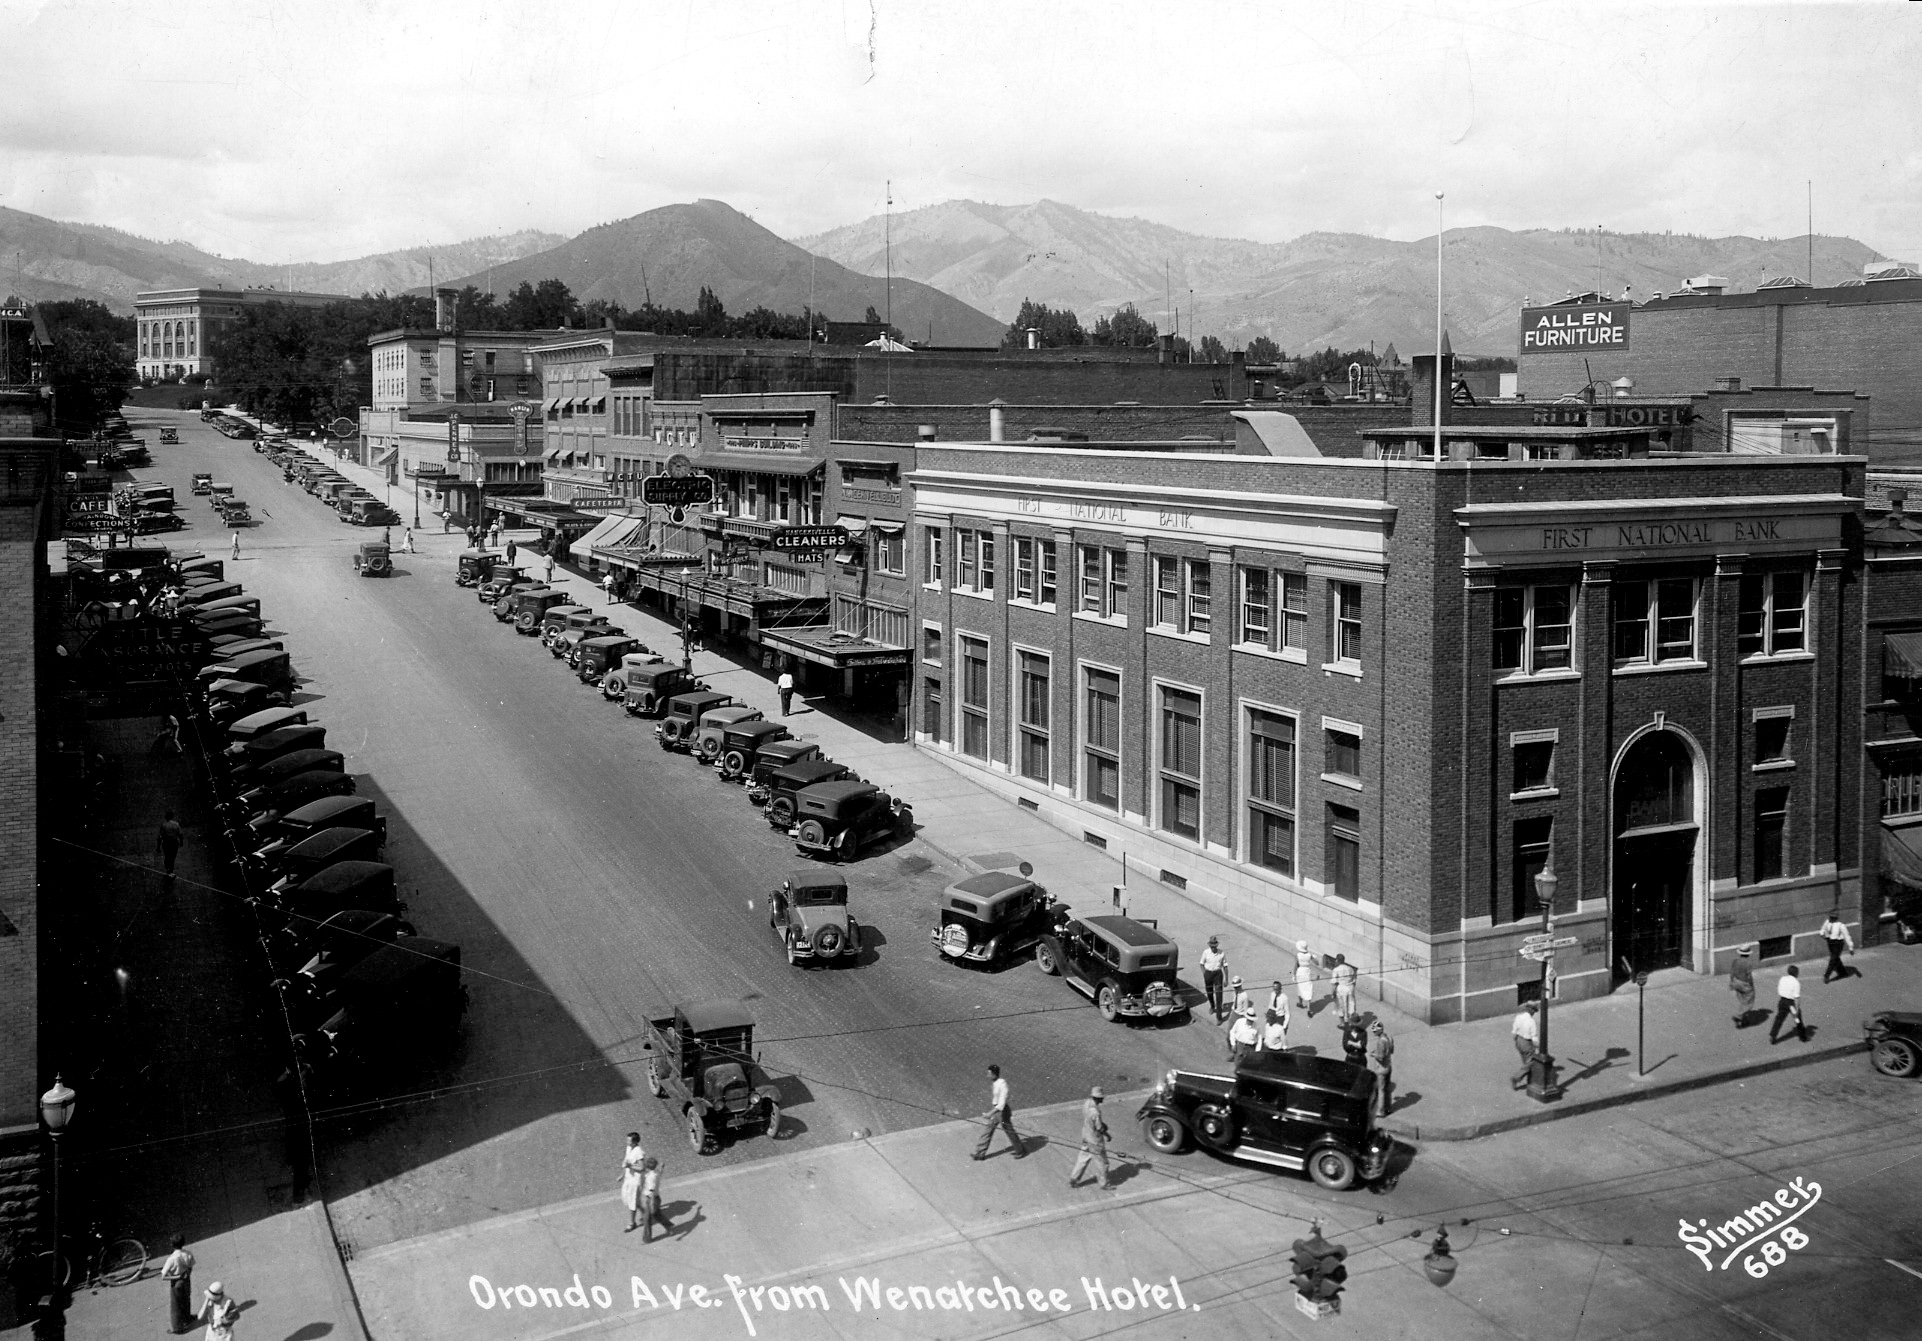 Looking up Orondo Avenue from intersection with Wenatchee Avenue: First National Bank; Nancekivell Building; Nancekivell's Cleaners; Phipps Building; Electric Supply Company; W.C.T.U. Building; Women's Christian Temperance Union (W.C.T.U); Morton Building; Harlin Hotel and Building.  Across South Mission Street is J. C. Penney; Elks Building.  Across South Chelan Avenue is Memorial Park and the Chelan County Courthouse.  To the right is Allen Furniture sign on building; large number of automobiles visible and pedestrians.   This version of the building stood at this location until 1974.